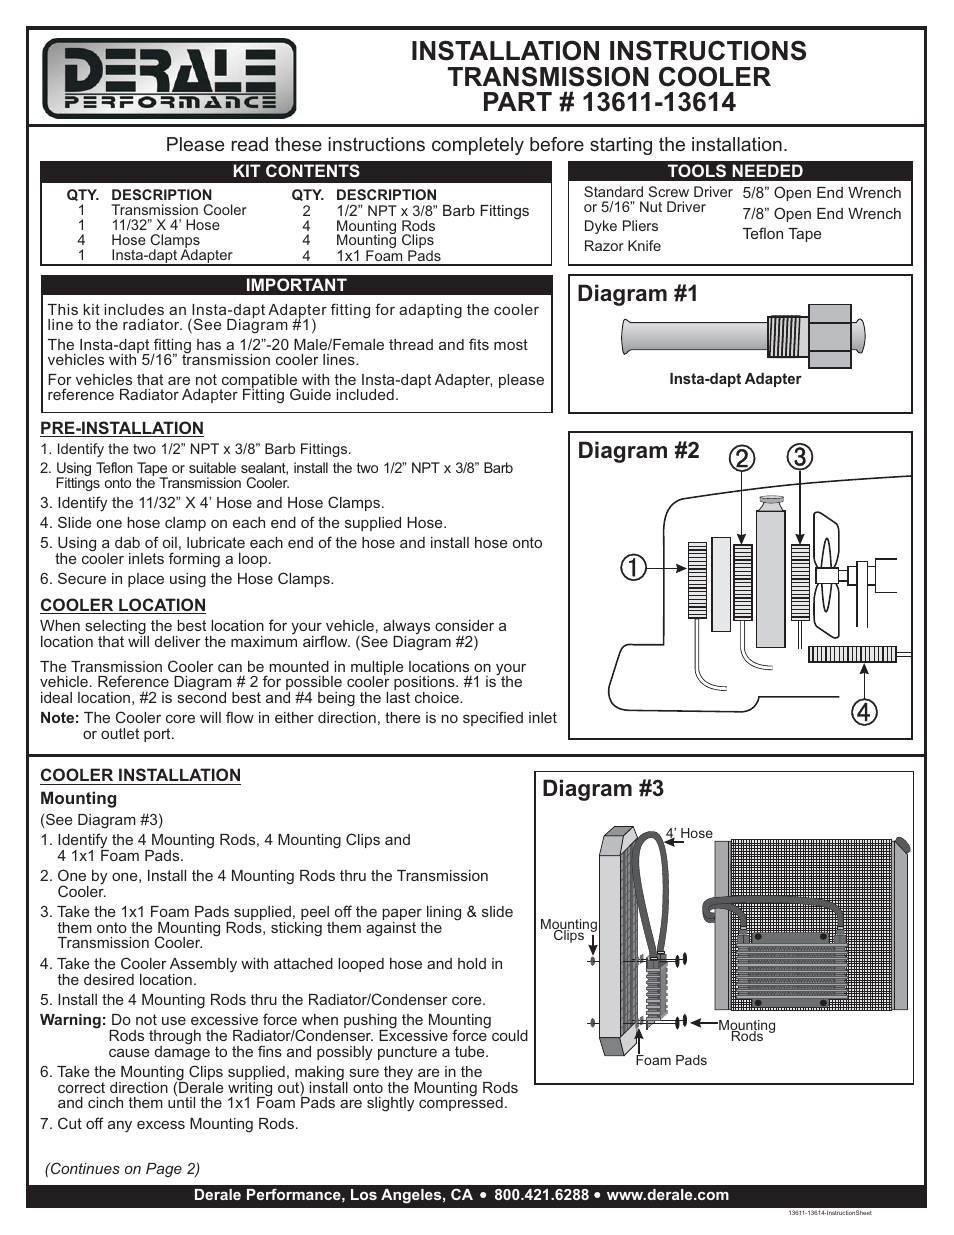 [SCHEMATICS_4US]  Derale Performance 5 Row Series 9000 Plate & Fin Transmission Cooler Kit  User Manual | 3 pages | Derale Oil Cooler Wiring Diagram |  | Manuals Directory